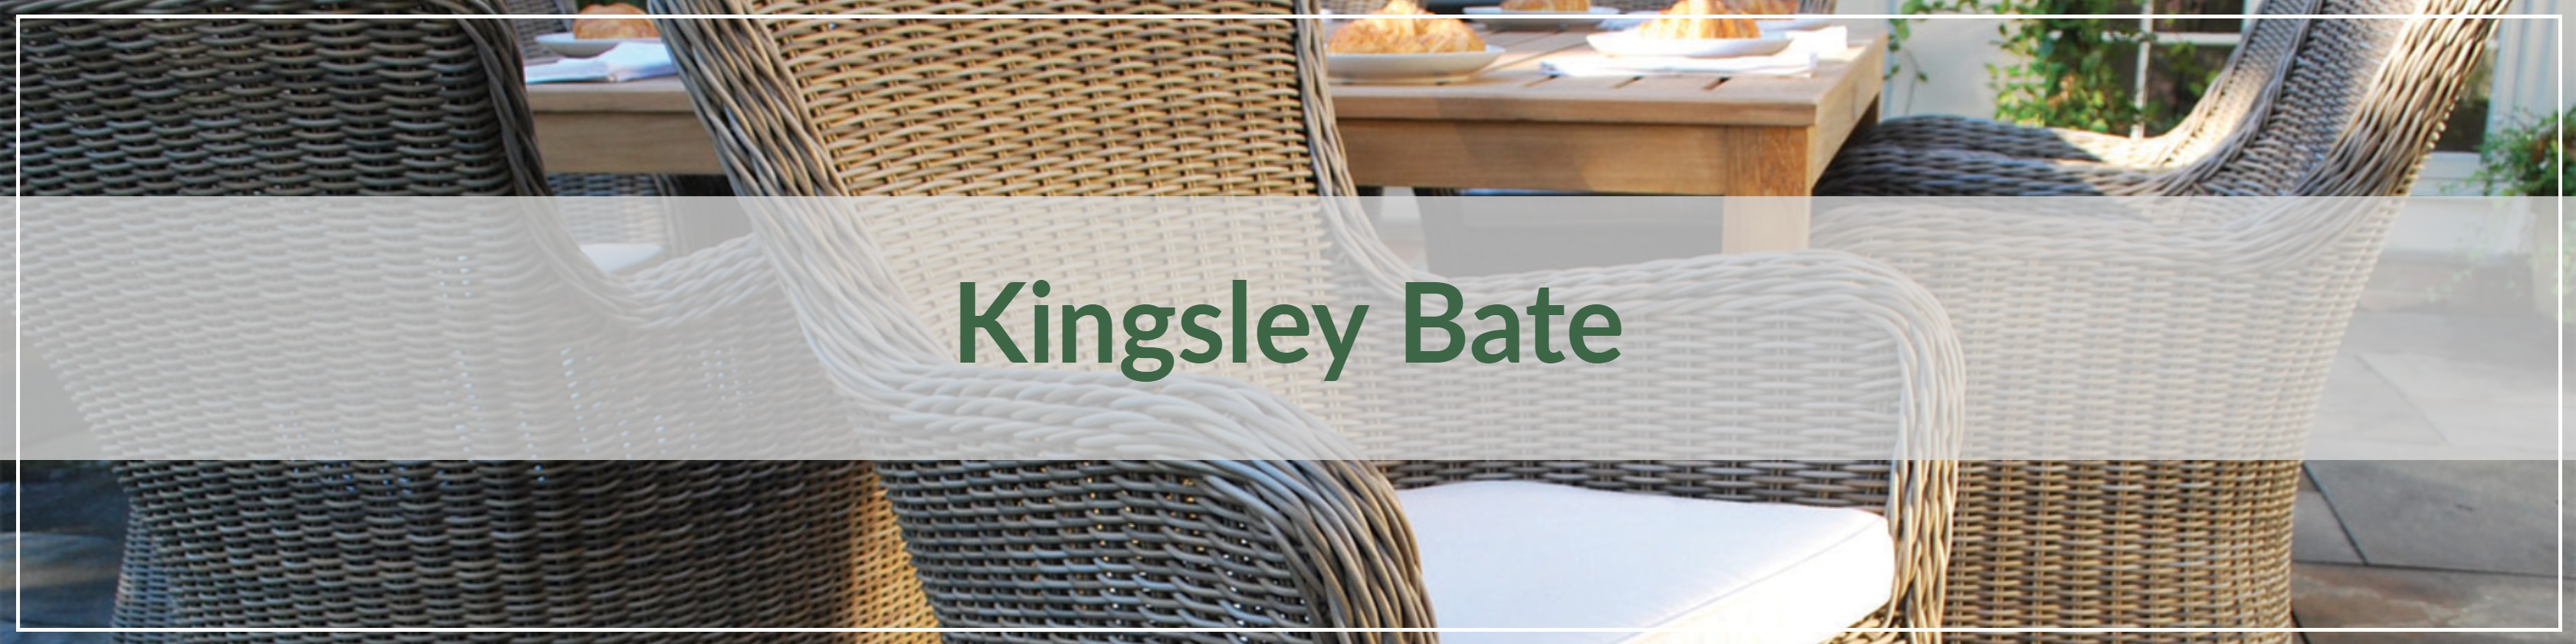 Kingsley Bate Resin Wicker Dining